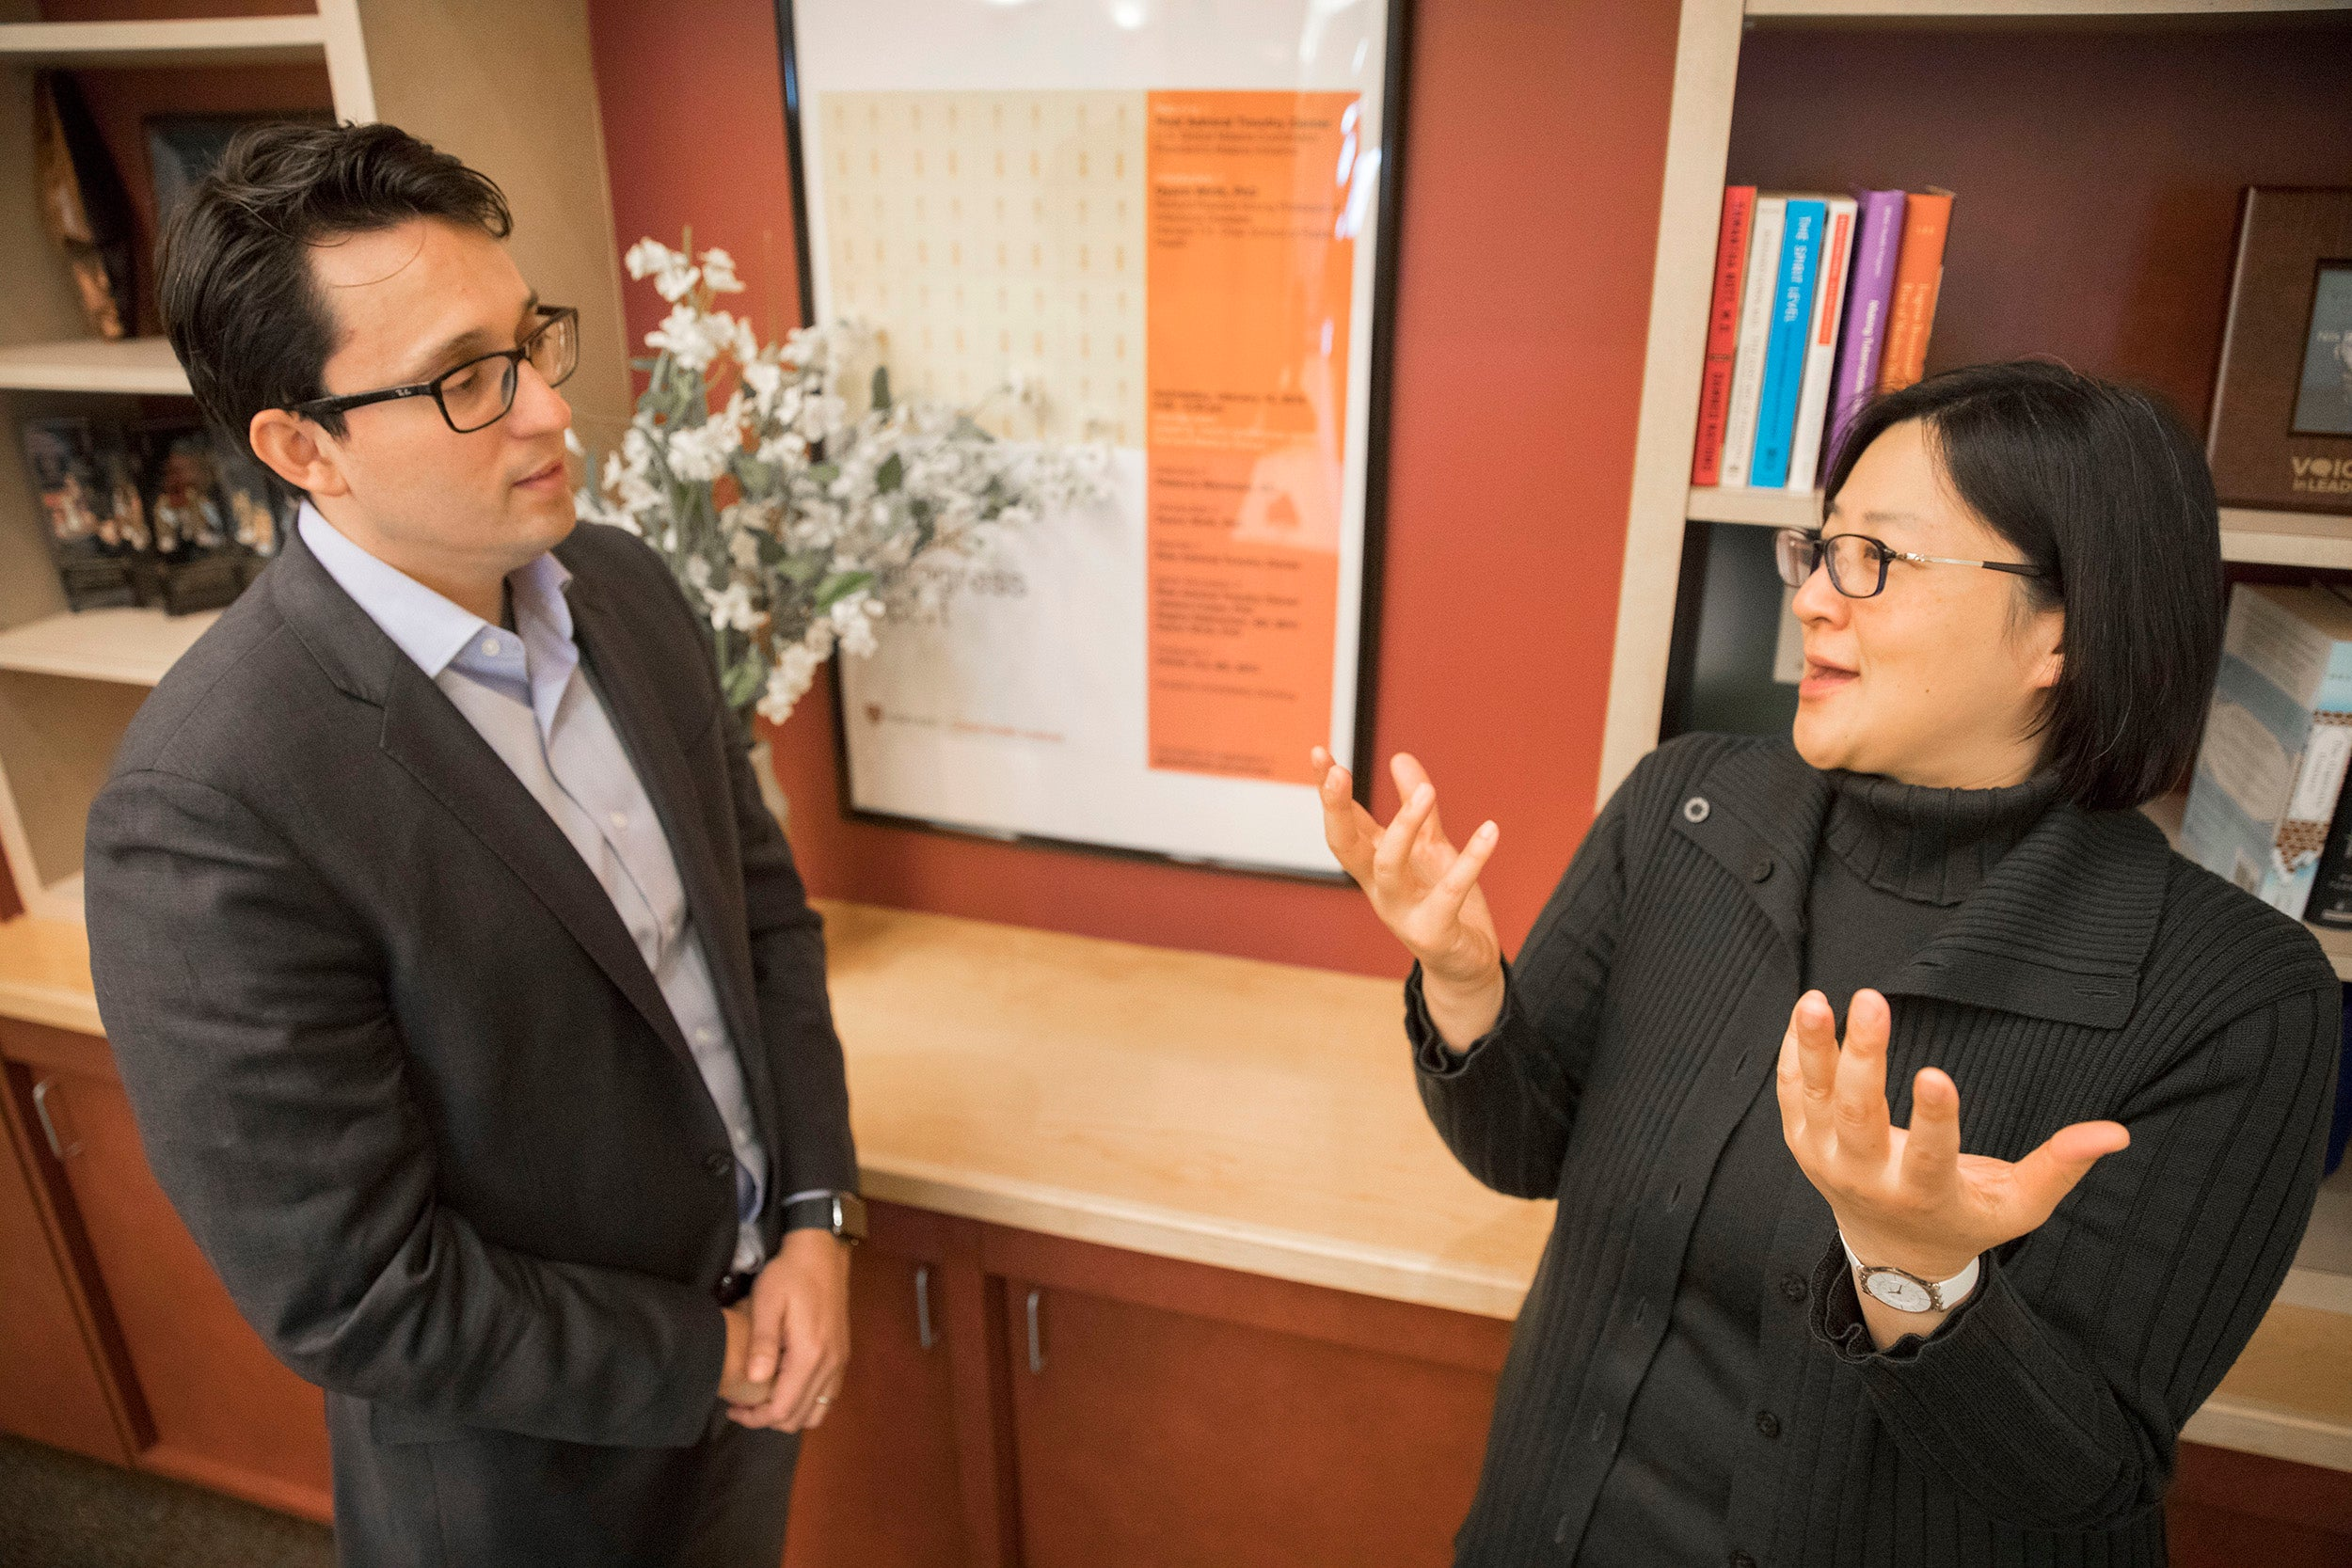 arvard Professor Winnie Yip and Burke Fellow Jose Figueroa